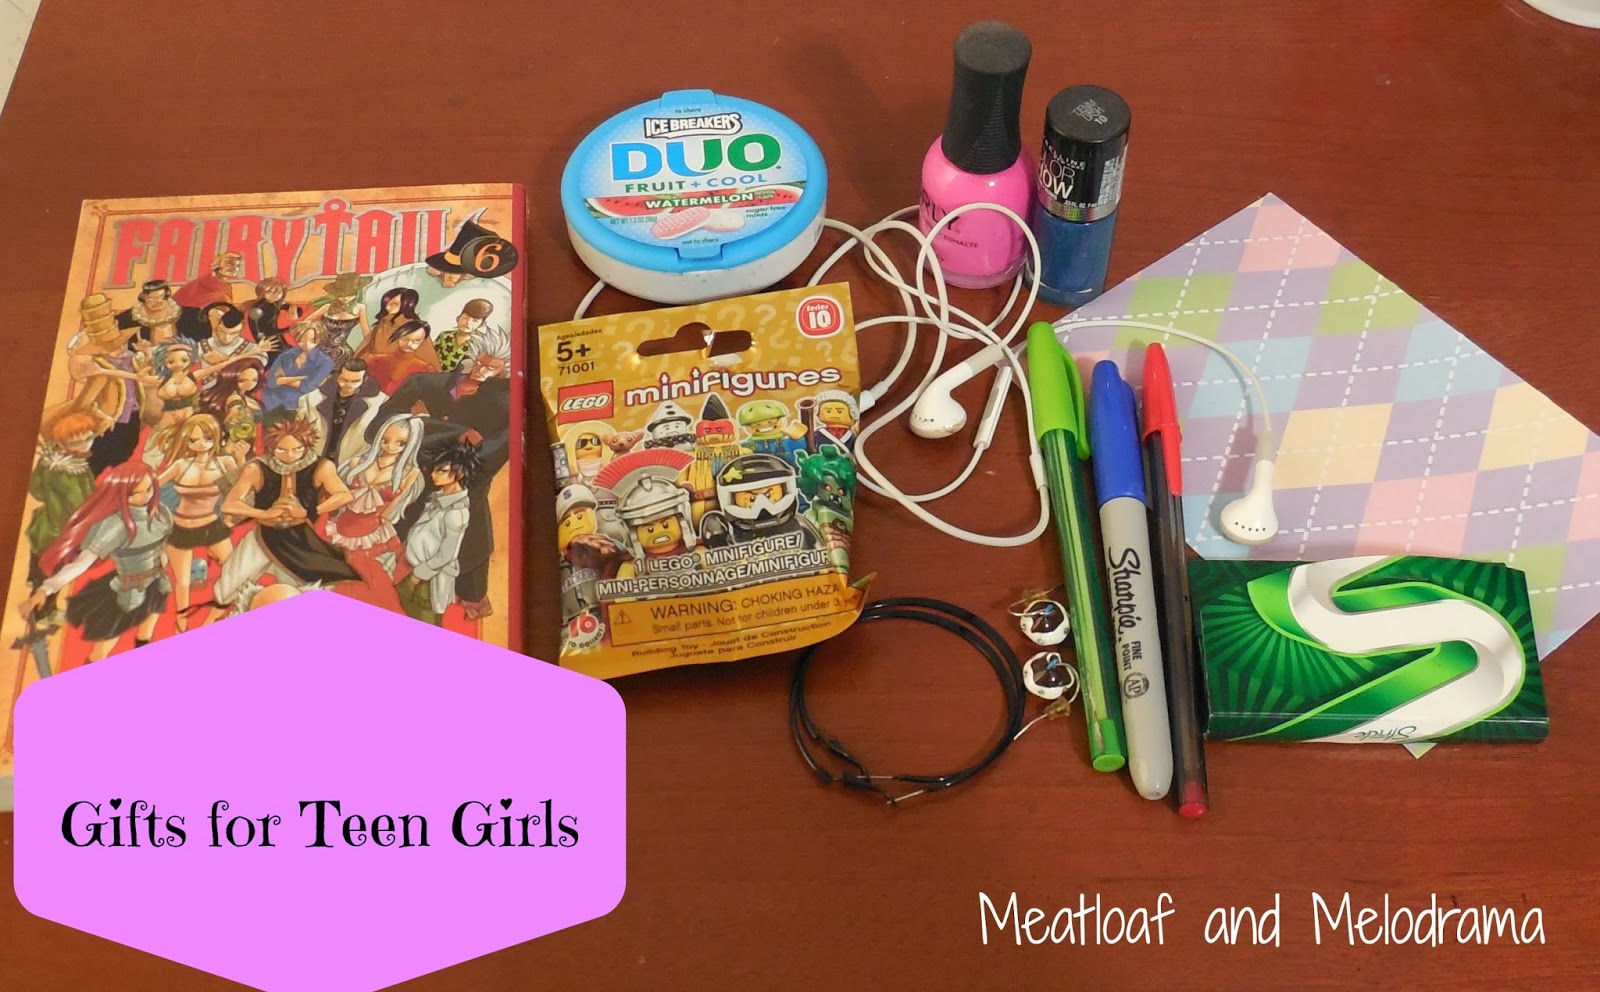 Toys For Teens 2013 : Gifts for teen girls or why gift cards rock meatloaf